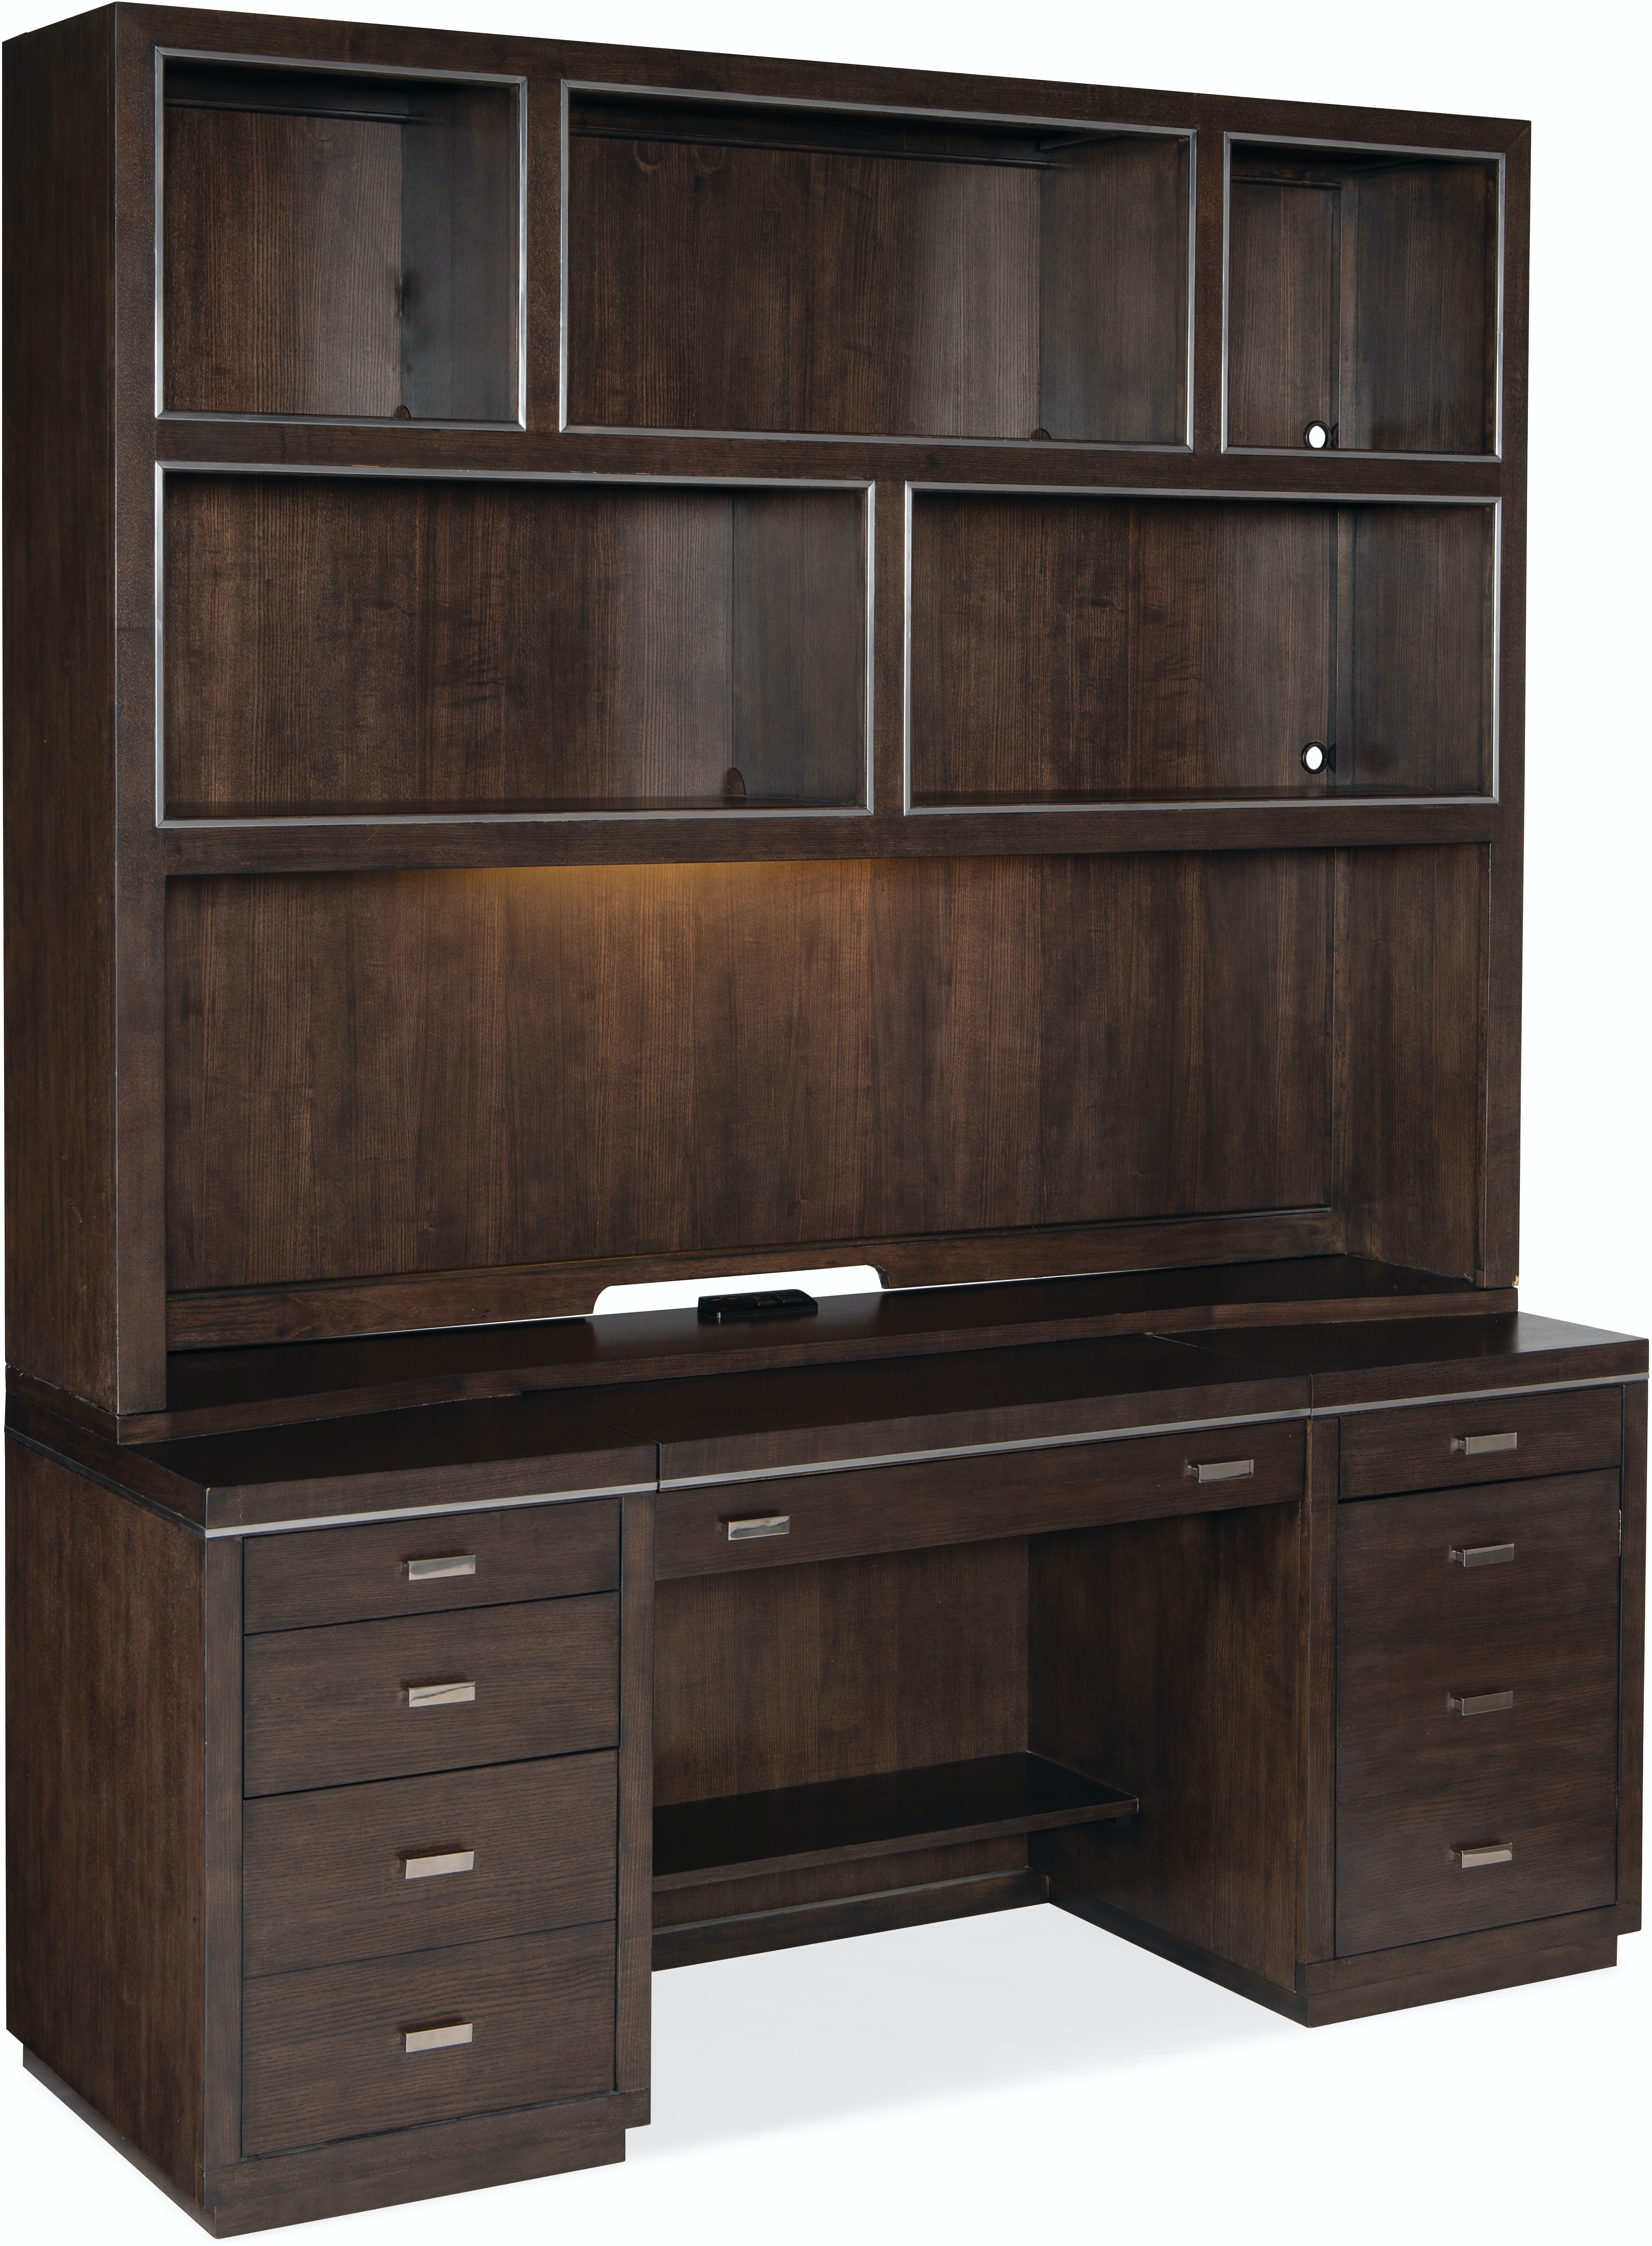 House Blend Credenza with Hutch by Hooker Furniture at Mueller Furniture